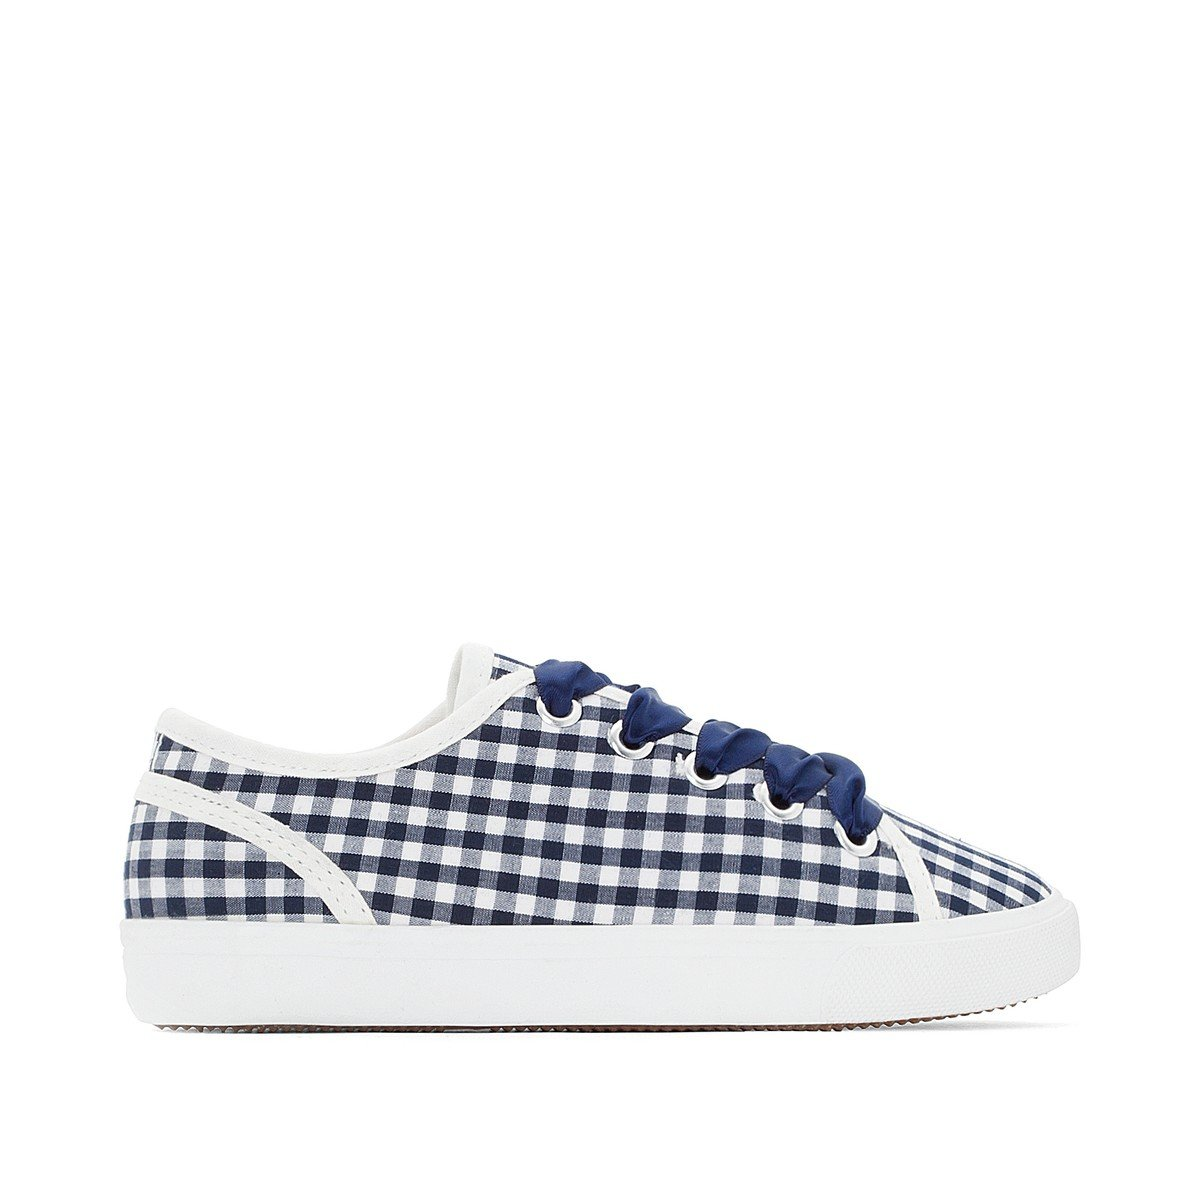 La Redoute Collections Big Girls Gingham Low Top Trainers Blue Size 35 (2.5 to 3)